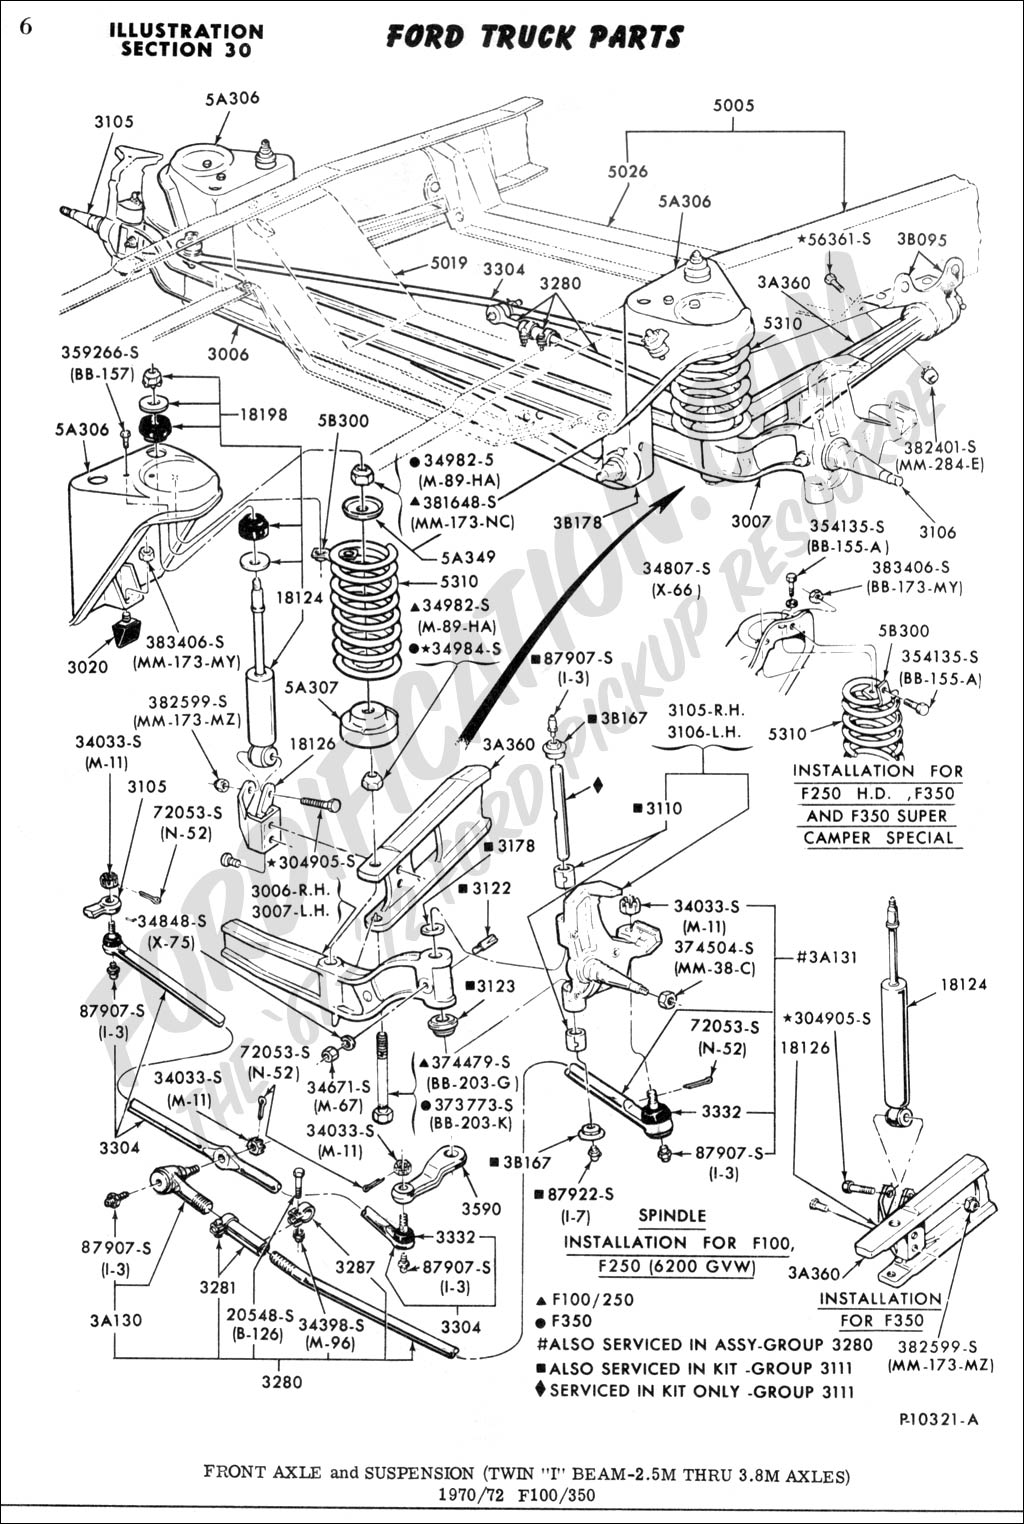 Ford F 250 Front Suspension Diagram Also Ford F 350 Super